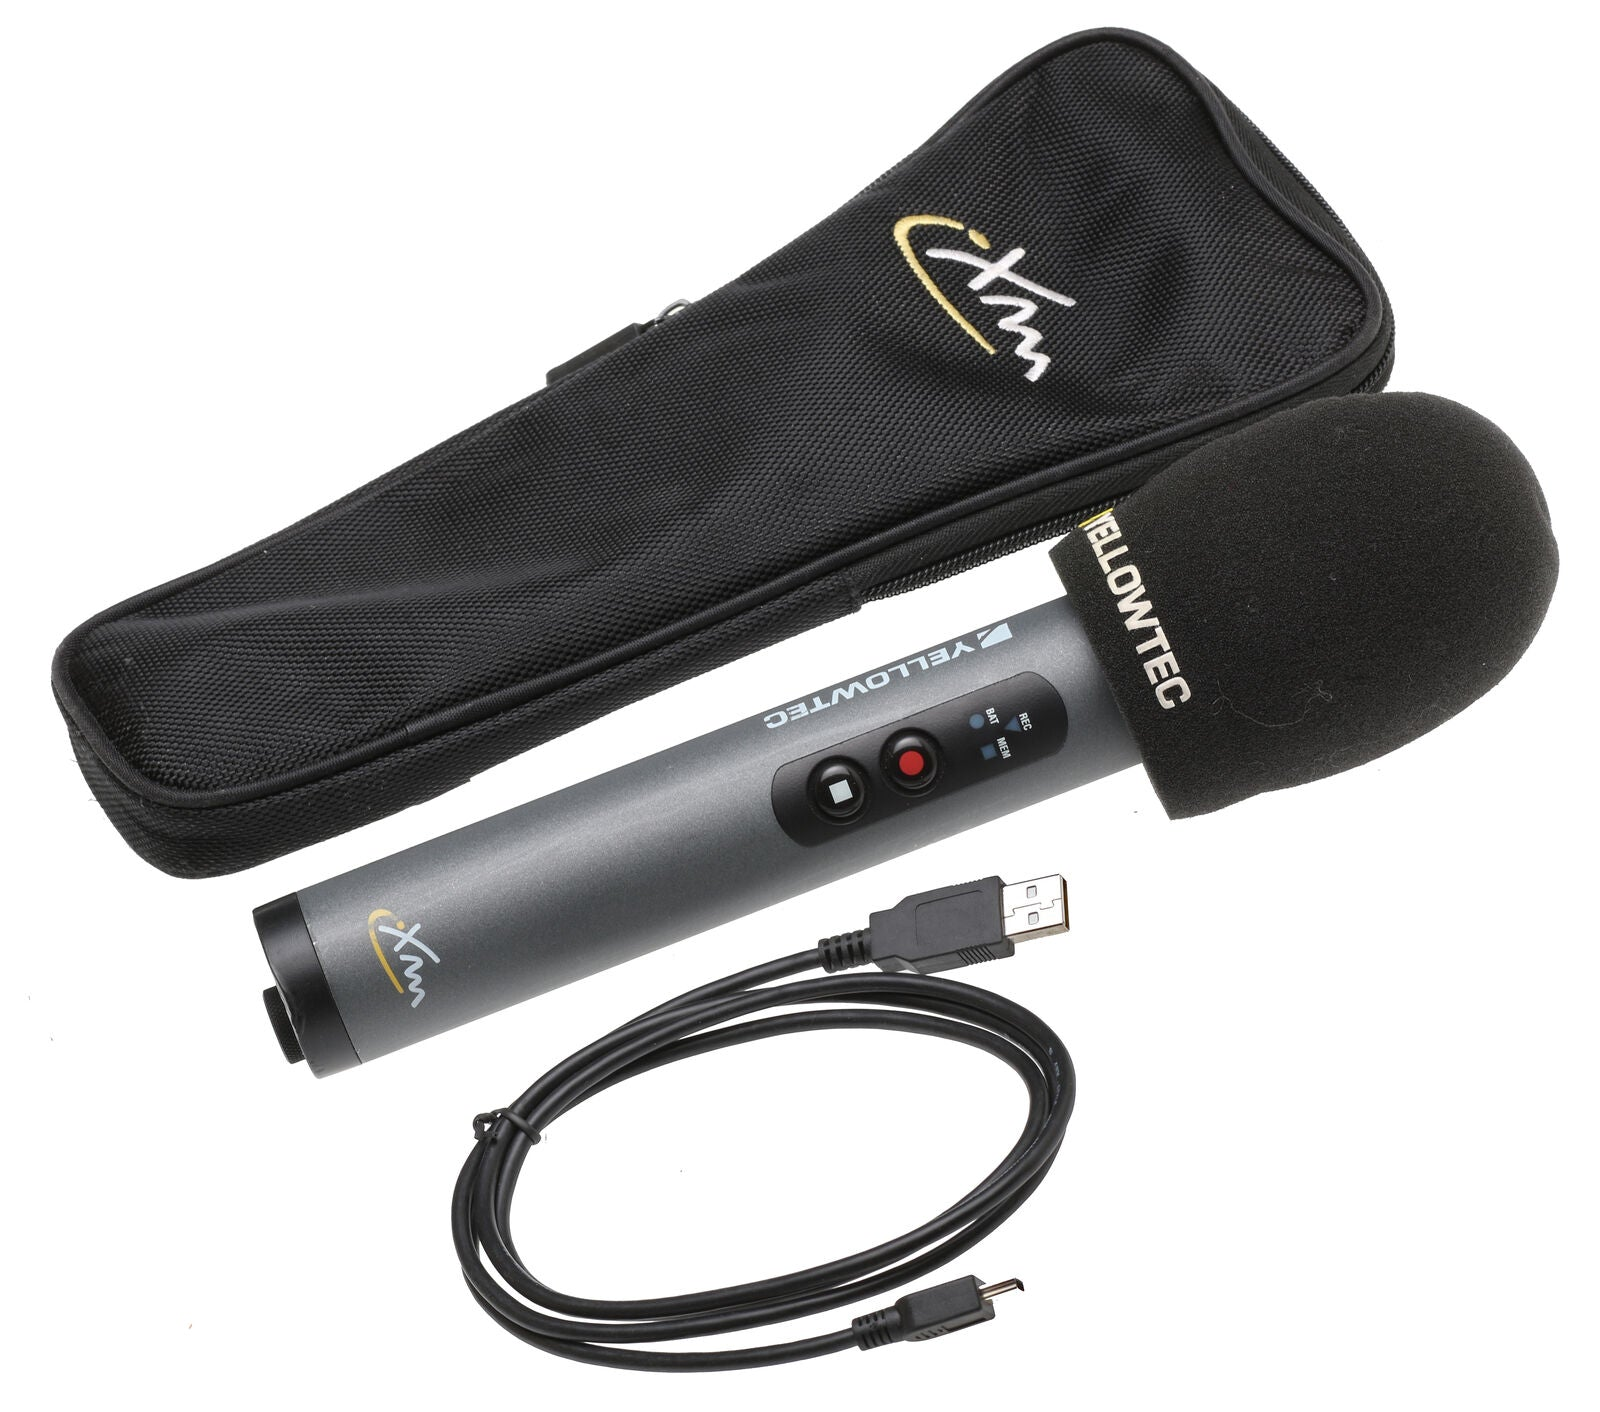 Yellowtec iXm YT5050 Pro Head Cardioid SD Card Recording Microphone Mic w/ Case [Refurbished]-www.prostudioconnection.com